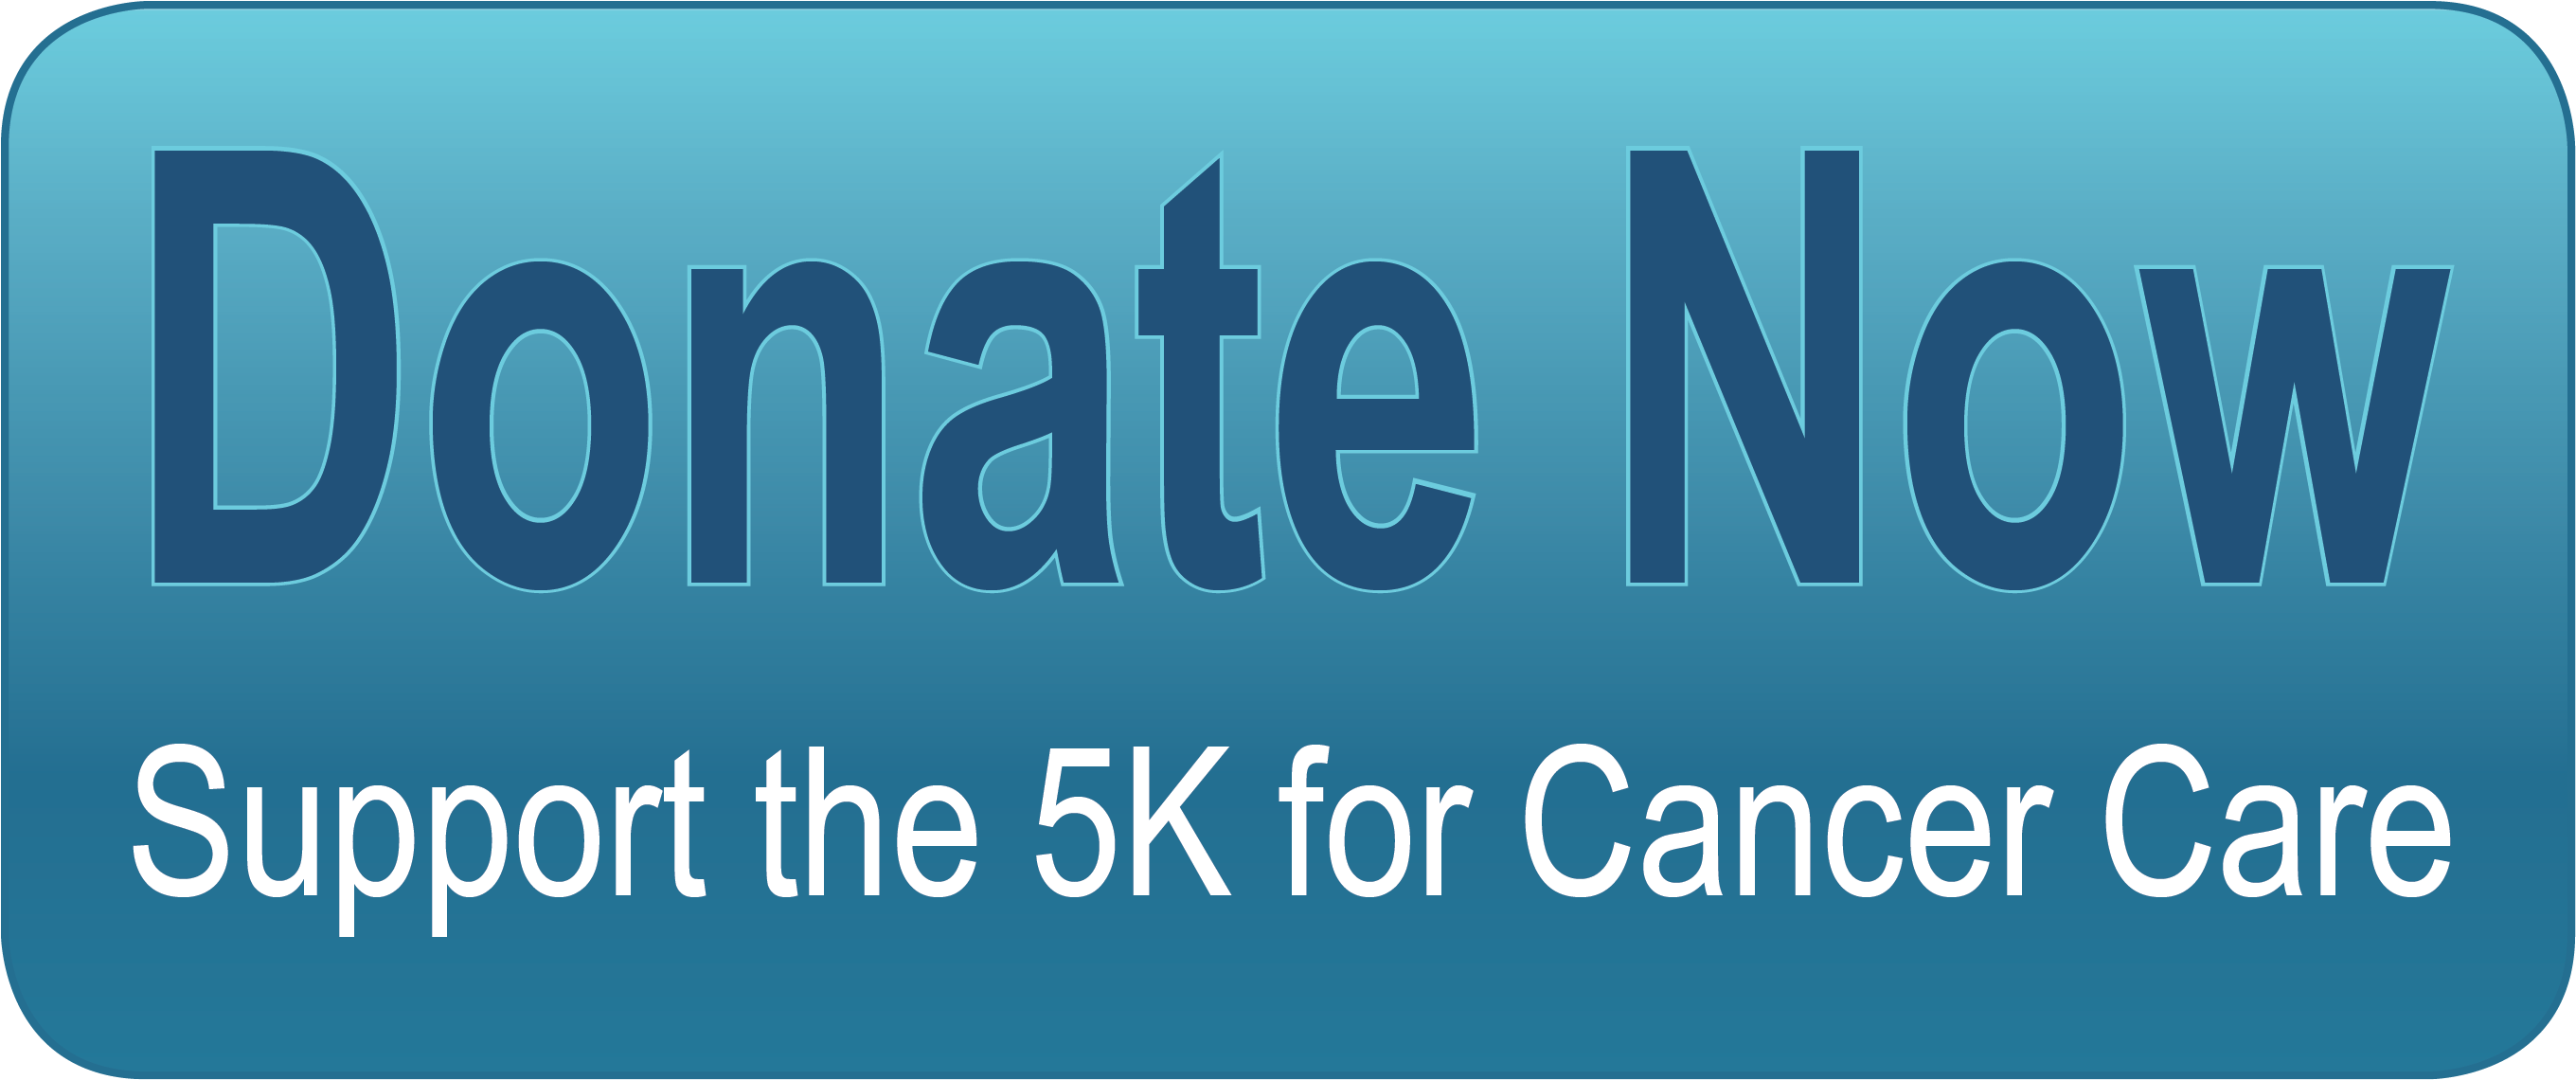 Donate to the Cancer Care 5K